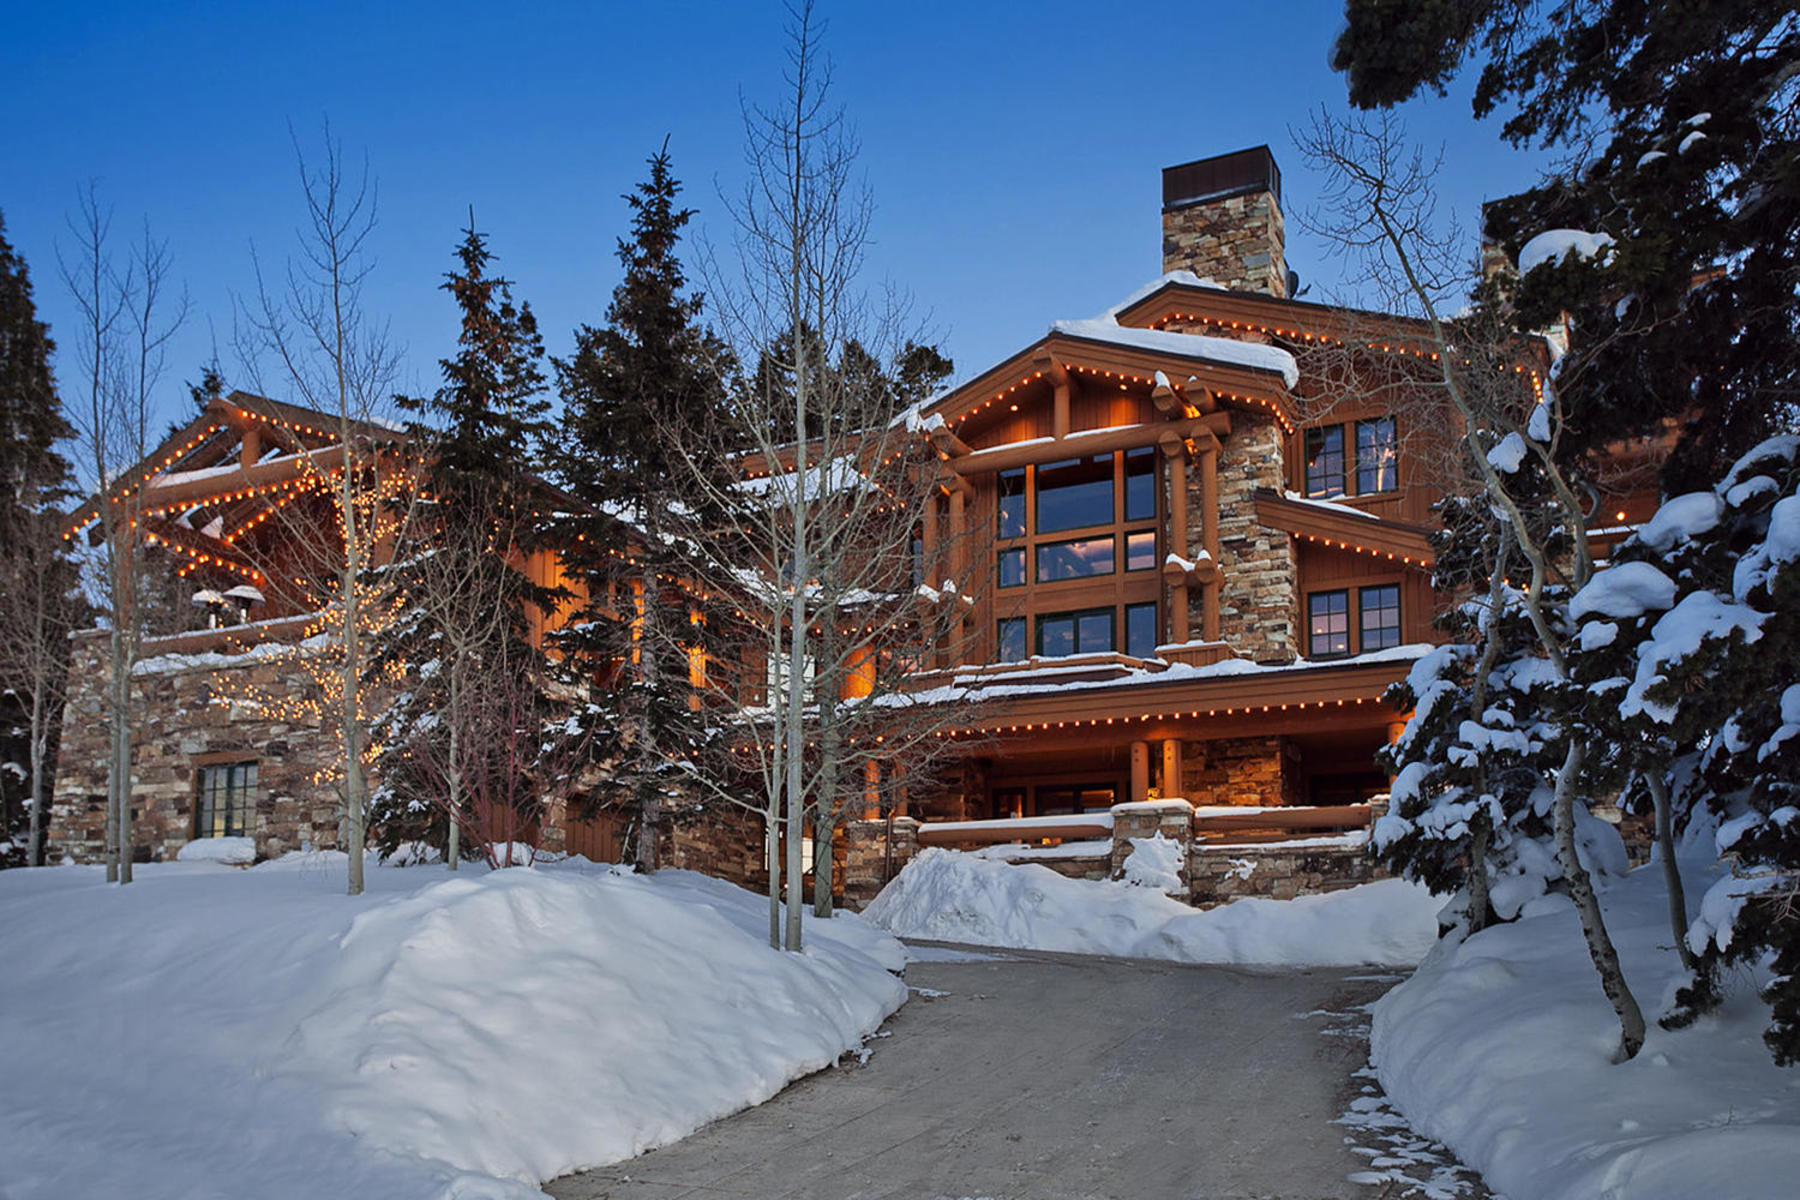 Maison unifamiliale pour l Vente à Magnificent Bald Eagle Ski Lodge Home 7831 Hawk Ct Park City, Utah, 84060 États-Unis